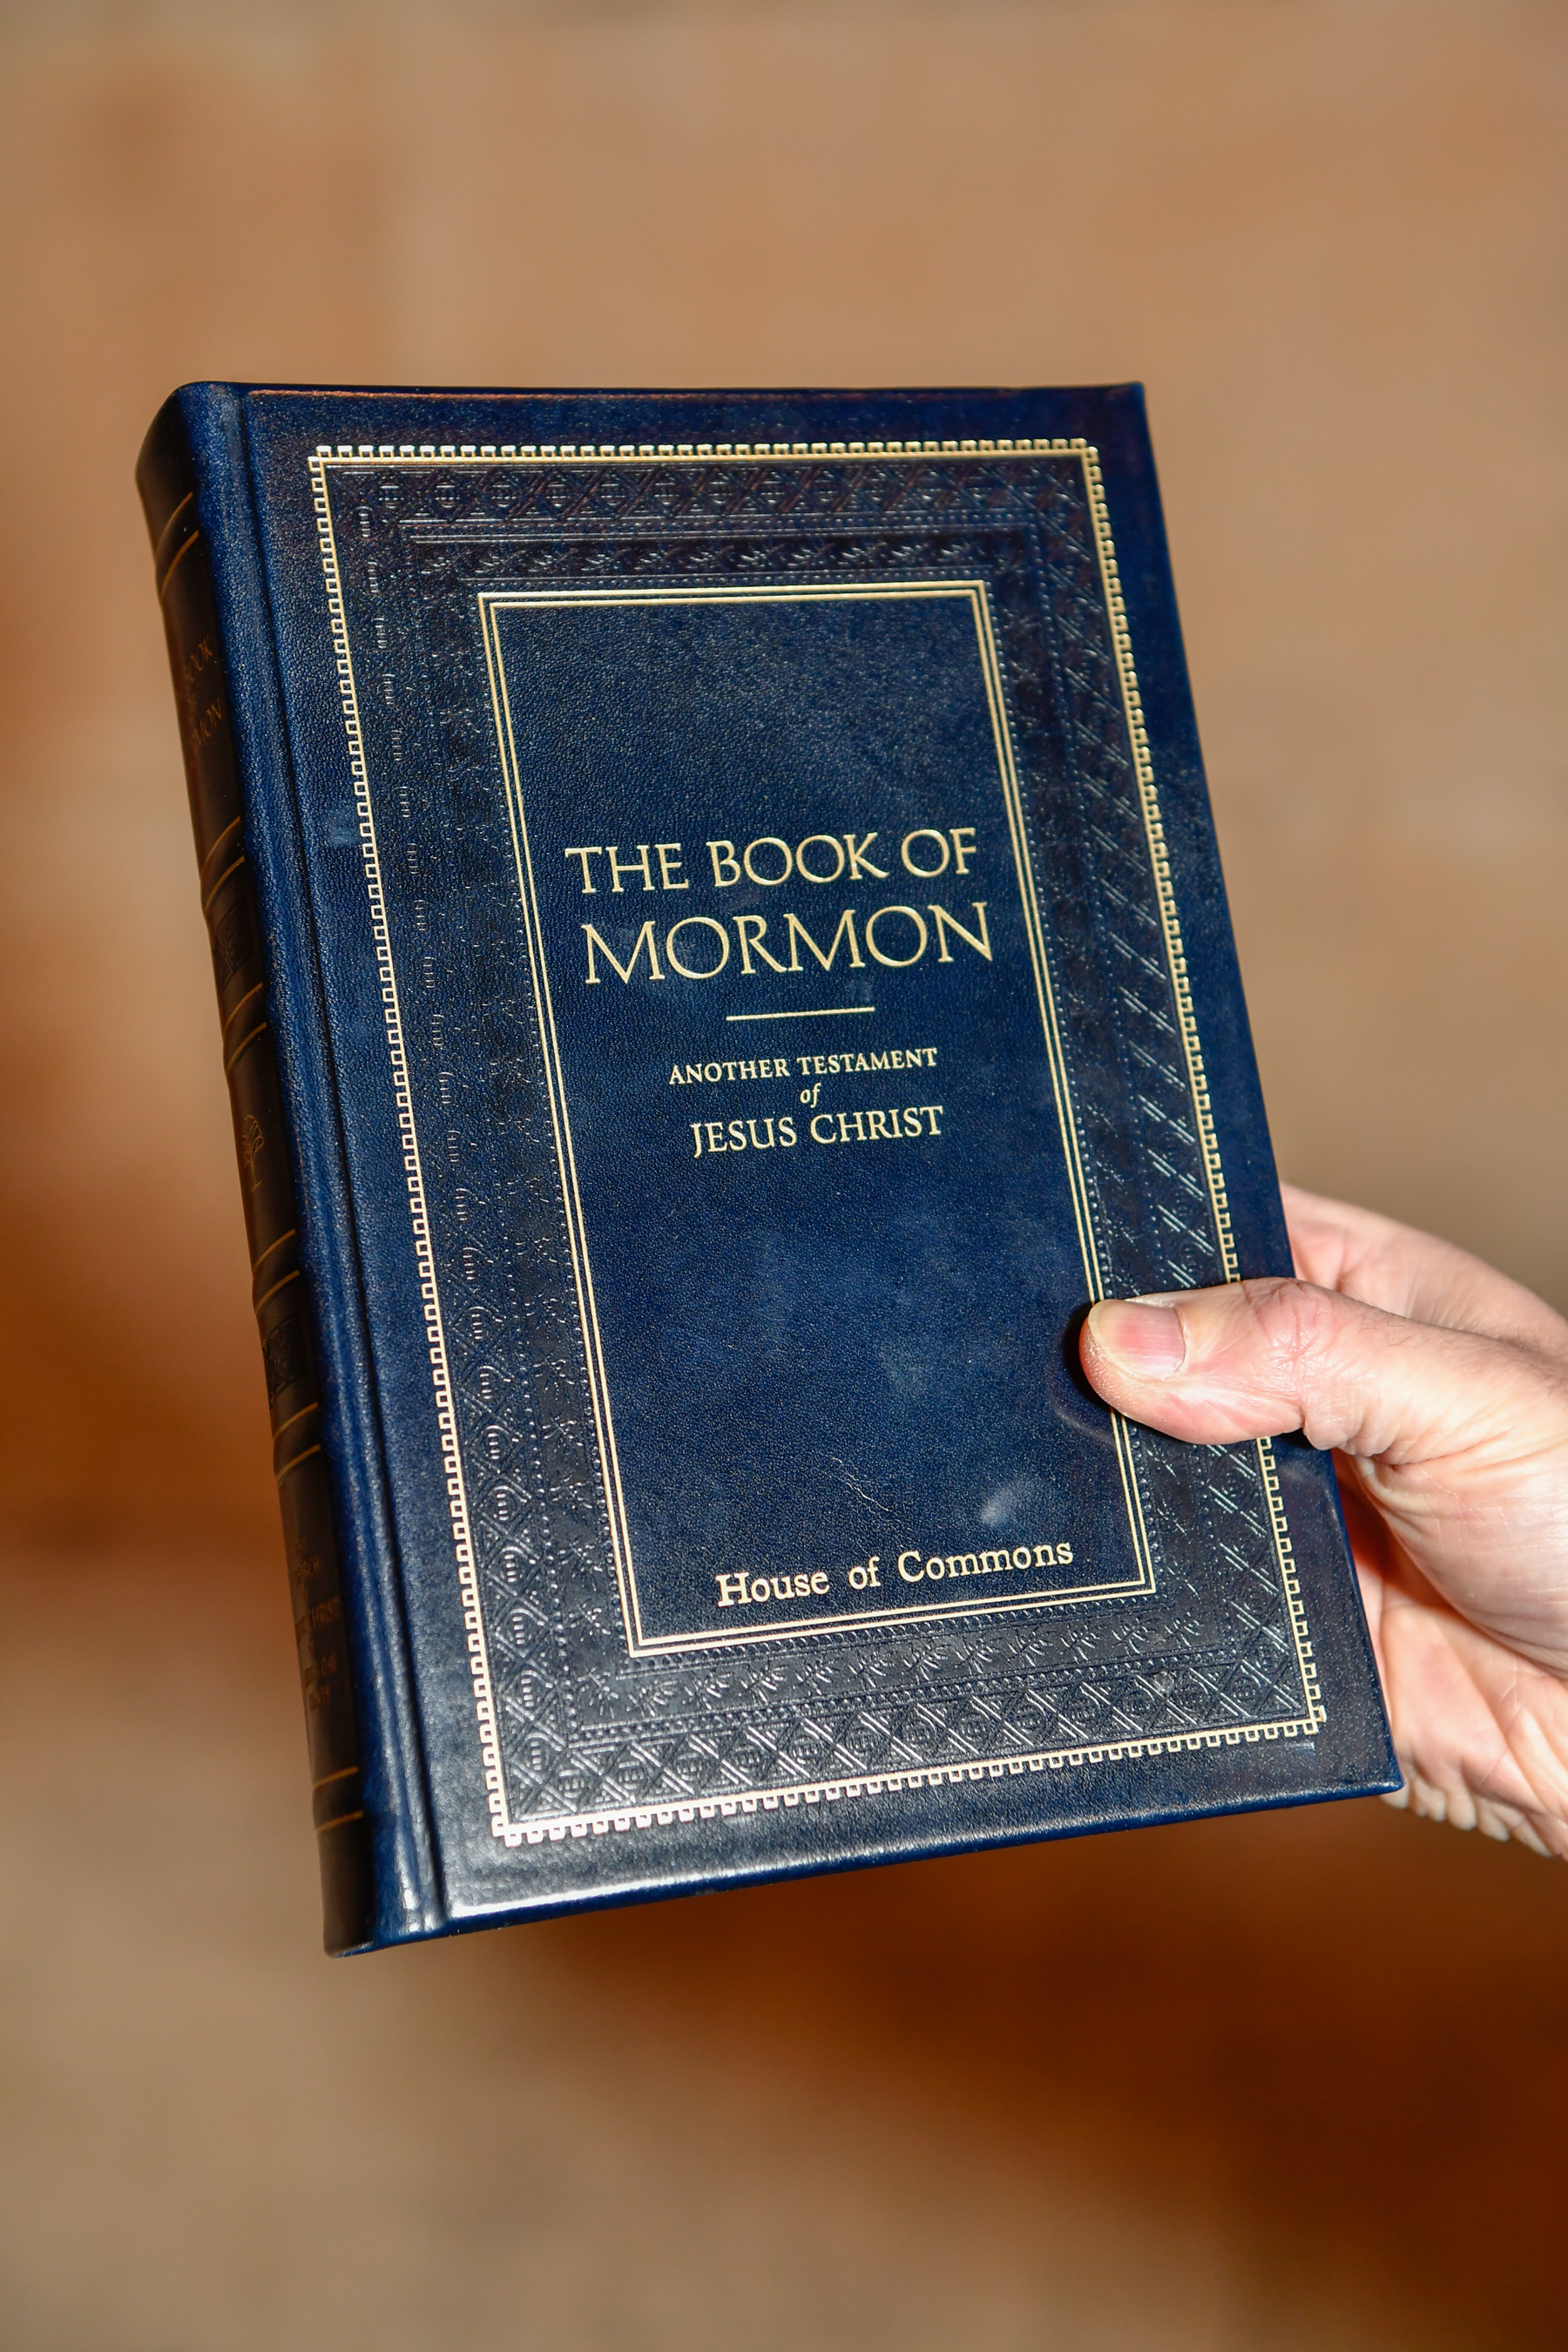 The First Presidency of The Church of Jesus Christ of Latter-day Saints provided a signed inscription inside a gift copy of the Book of Mormon presented by Elder Jeffrey R. Holland of the Quorum of the Twelve Apostles to the British House of Commons at the Palace of Westminster in London on Wednesday, Nov. 21, 2018.